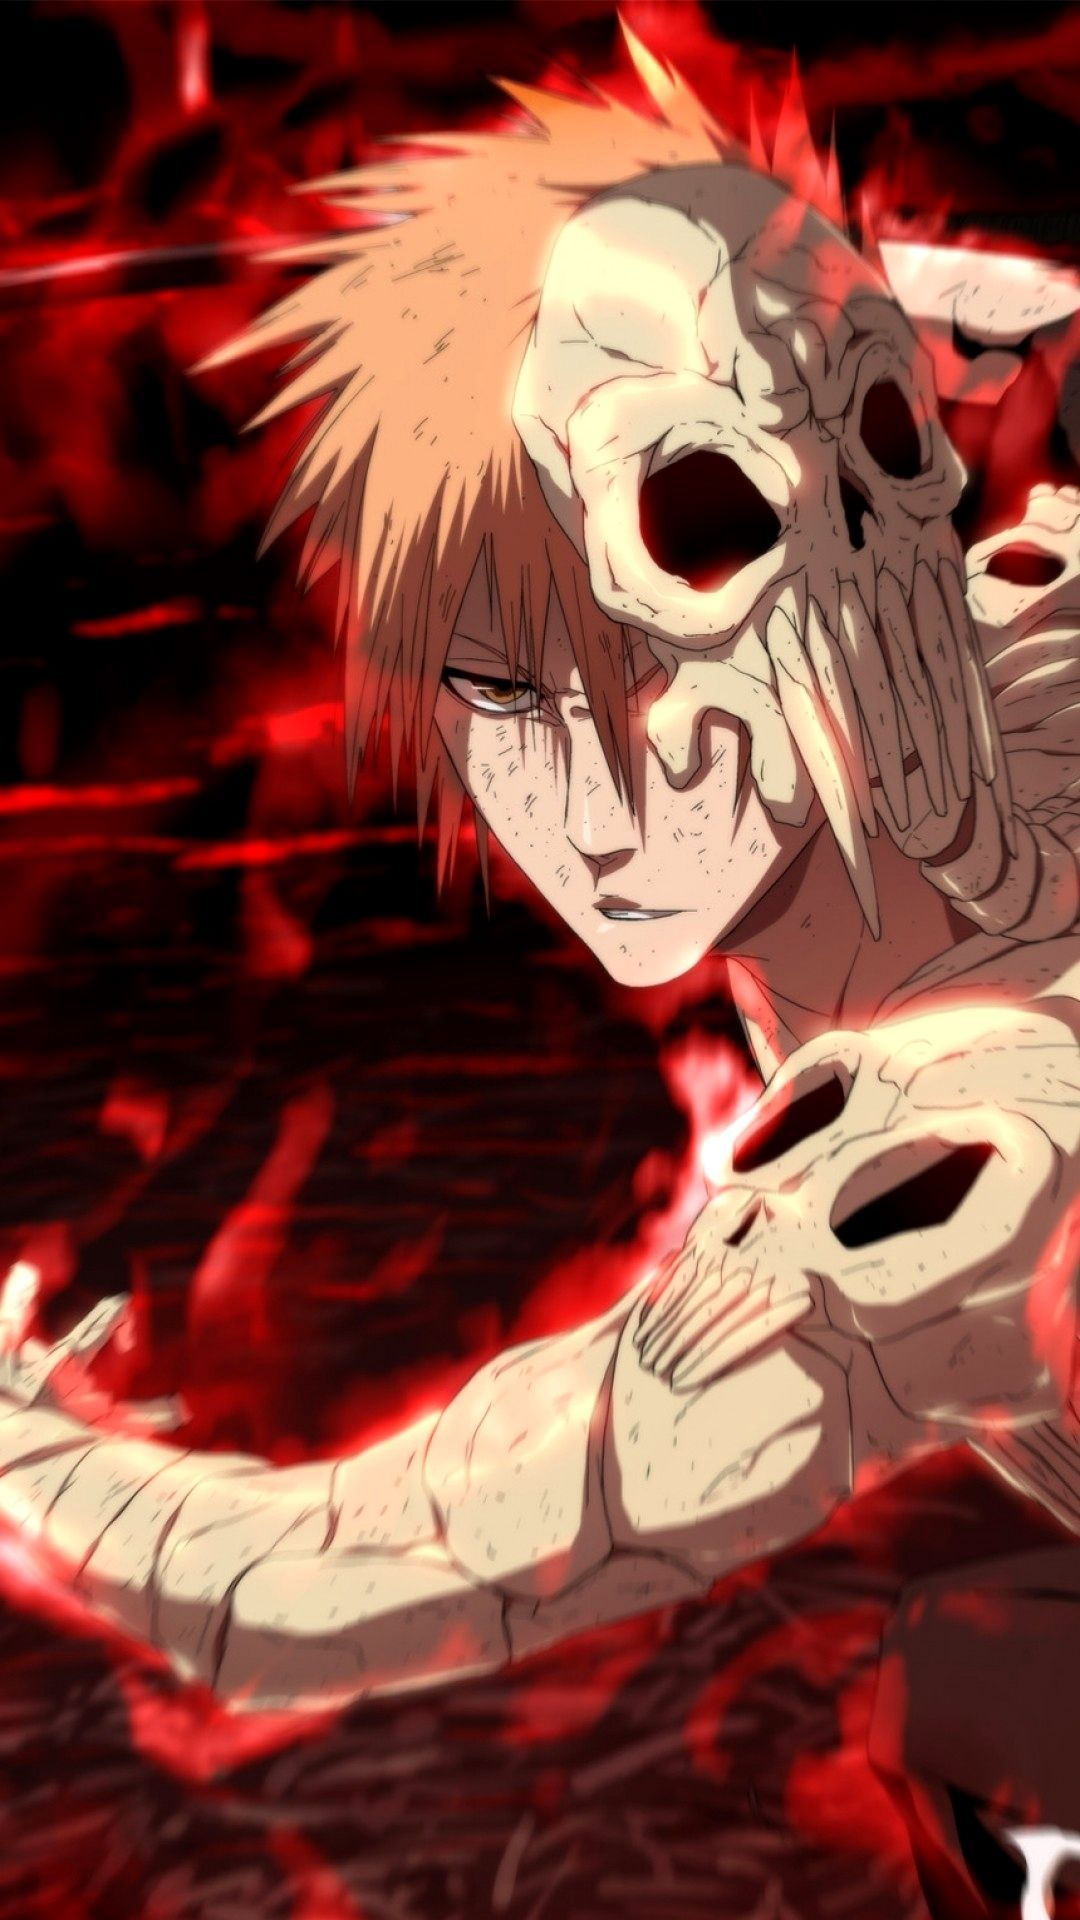 Bleach Wallpaper 4k Iphone Trick 4k In 2020 Bleach Anime Anime